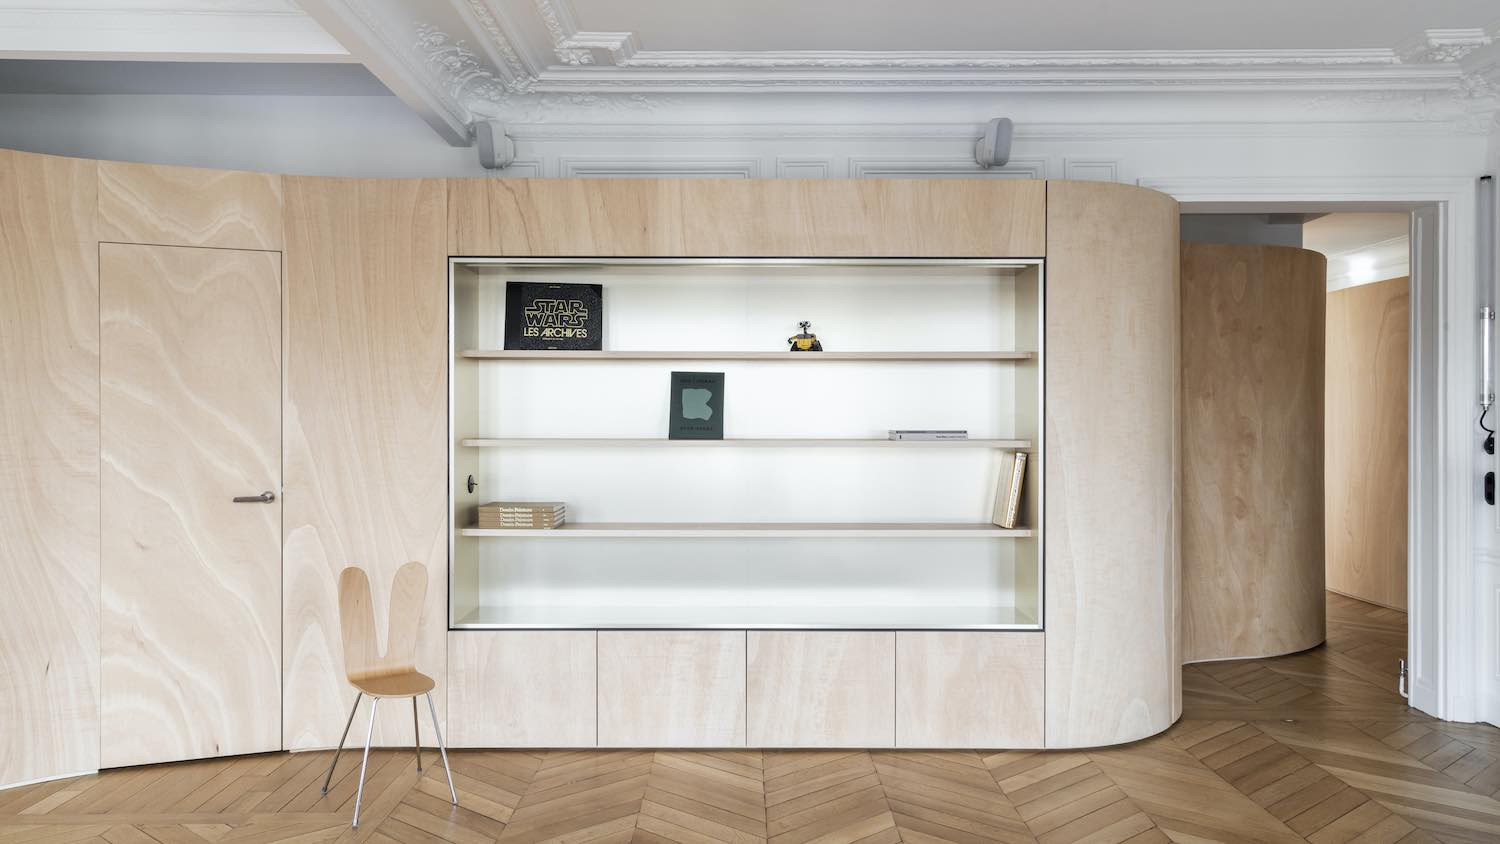 Wood Ribbon in Paris apartment by Toledano + architects